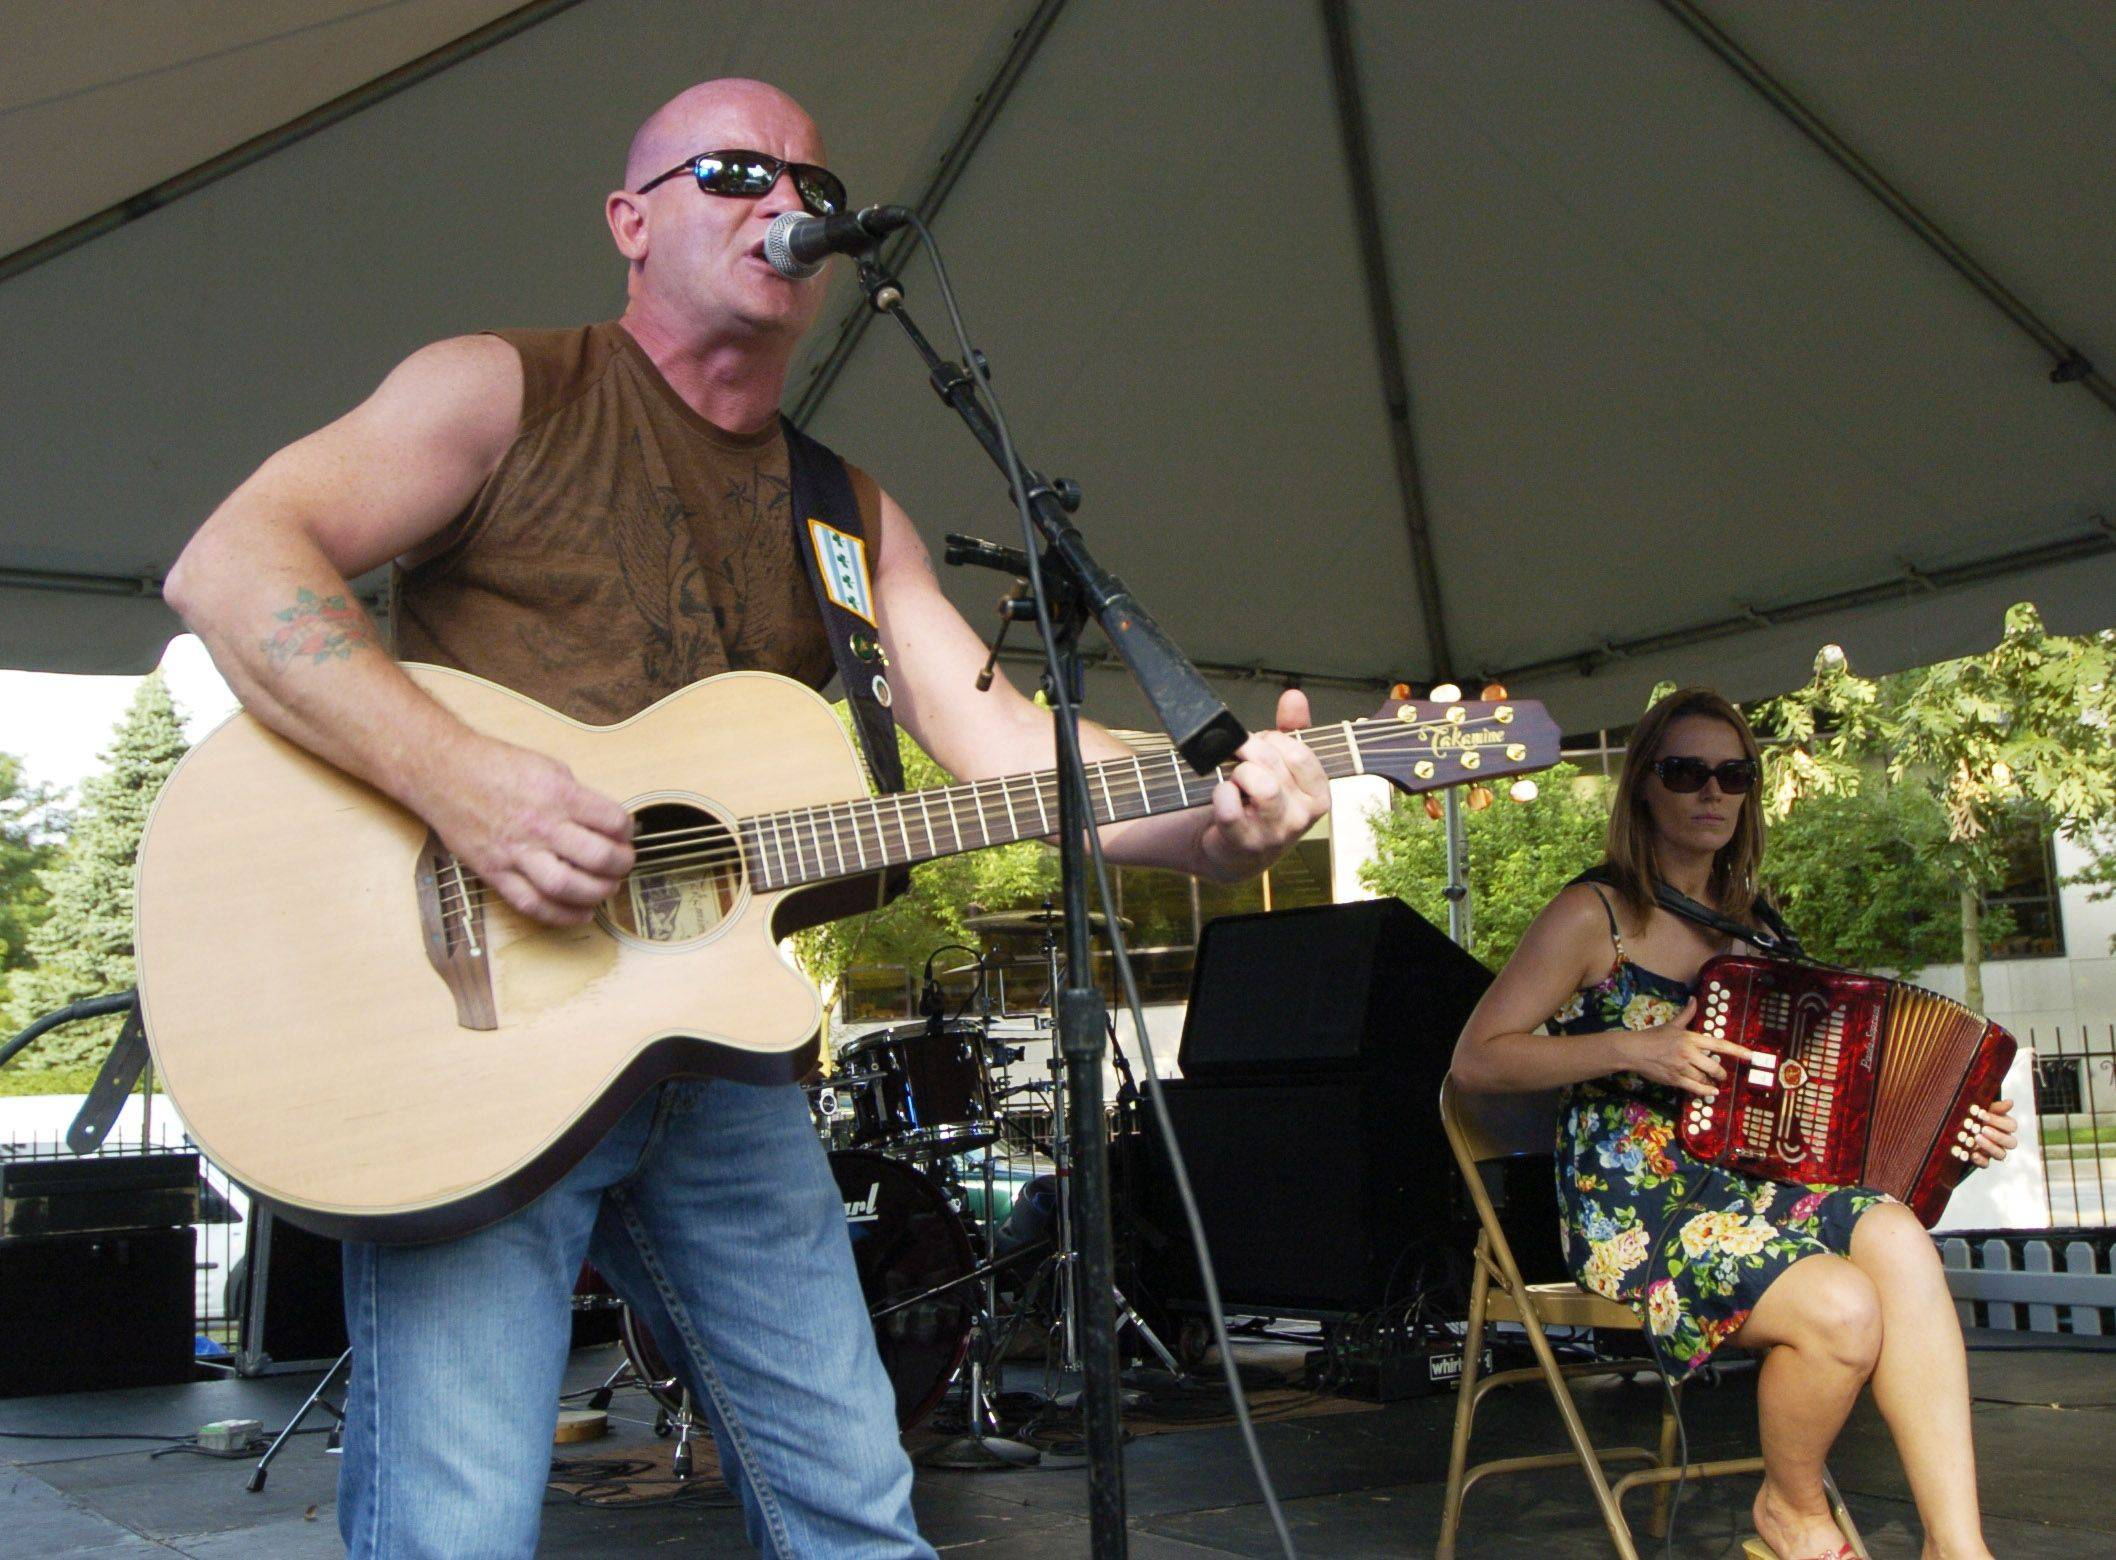 Barry Fagan of Finbarr Fagan sings and plays guitar while Sheila Doorley plays the accordion during Irish Fest in Arlington Heights Friday.